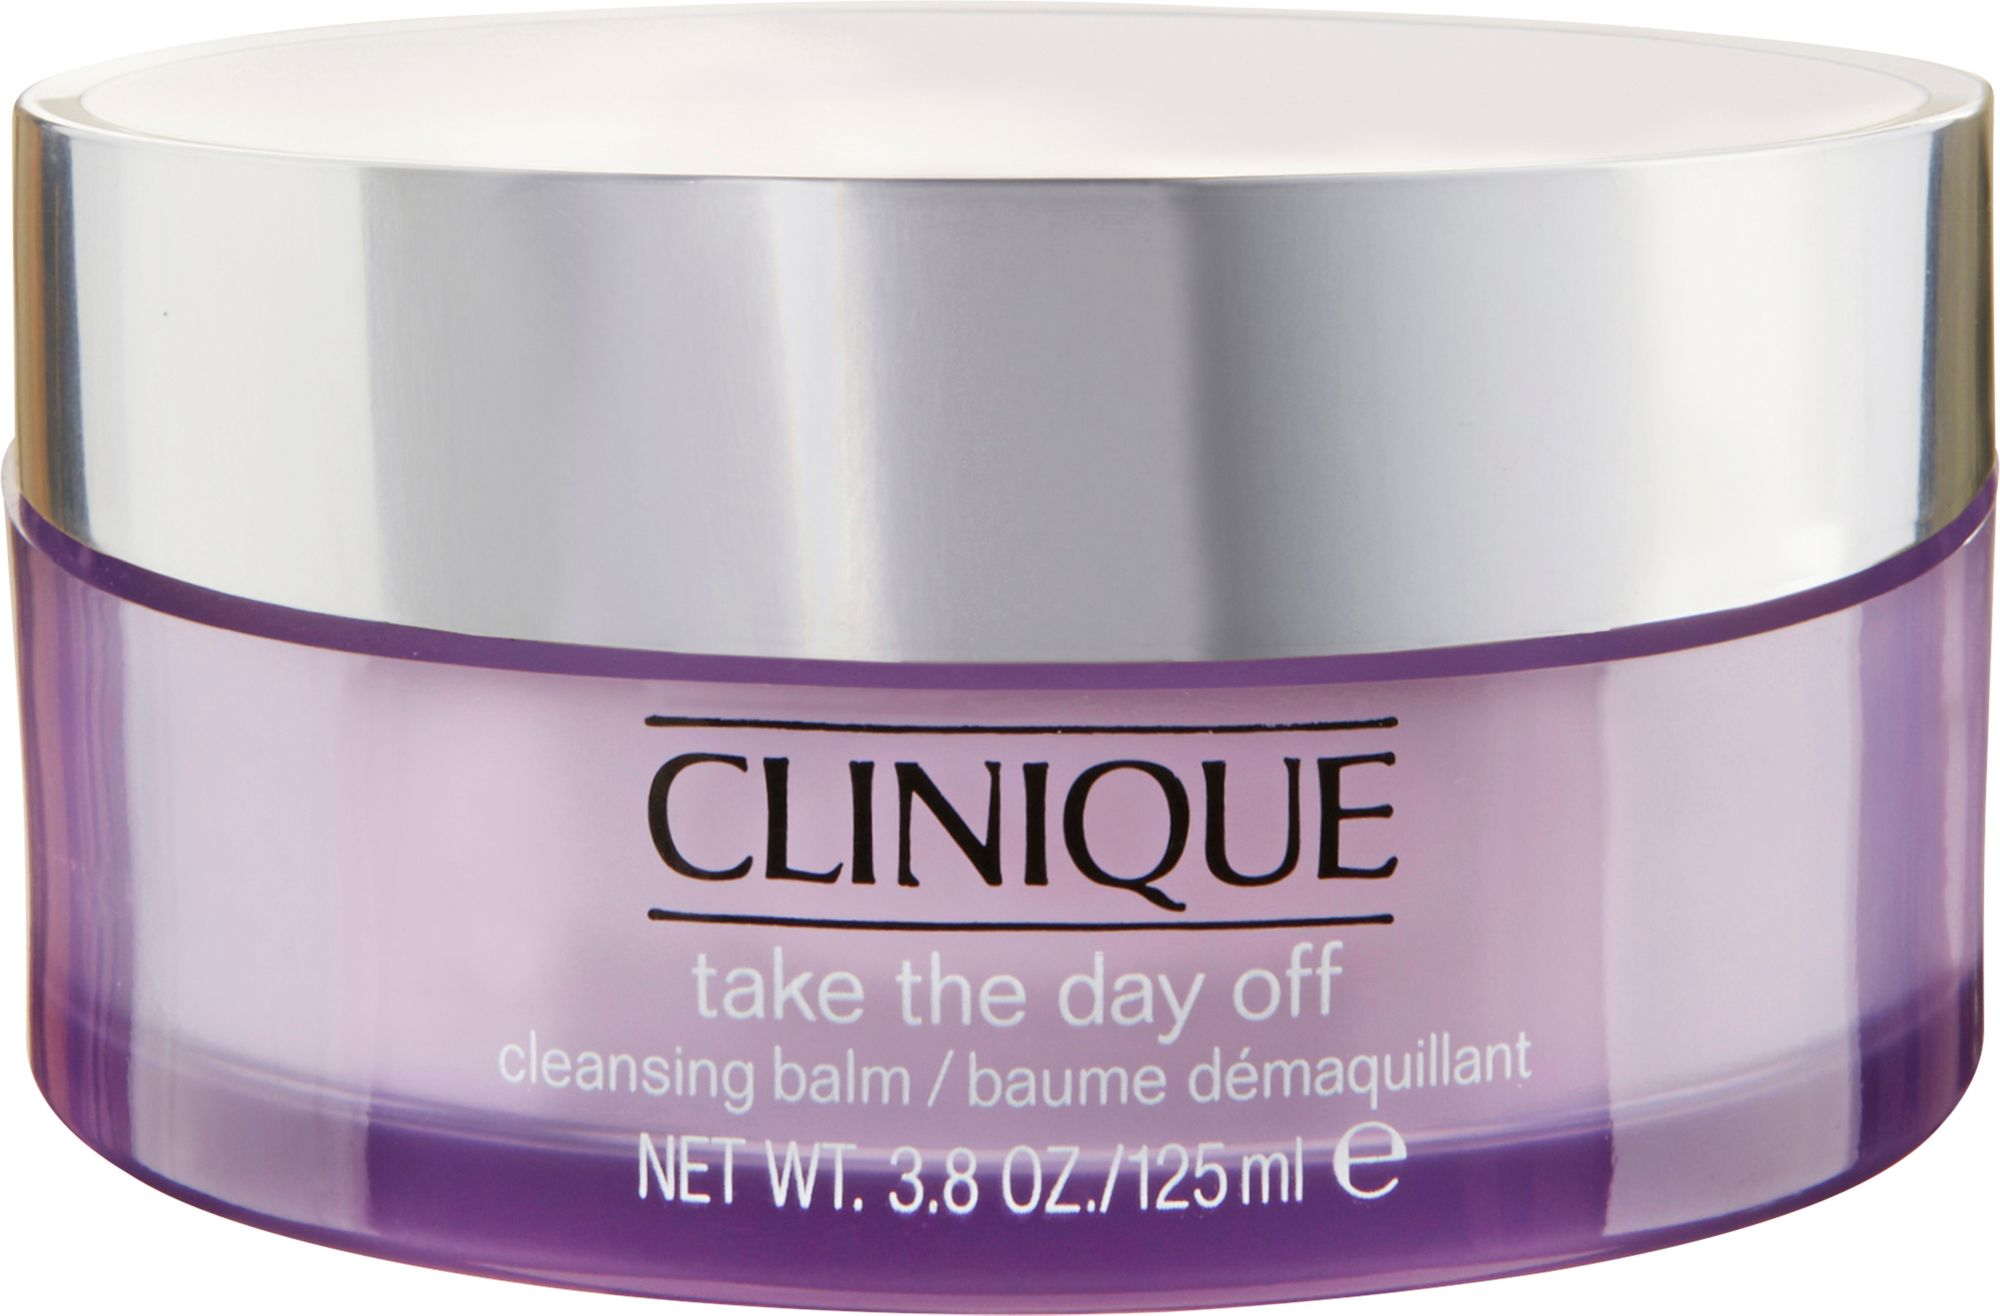 CLINIQUE Clinique, »Take The Day Off Cleansing Balm«, Reinigungsmilch